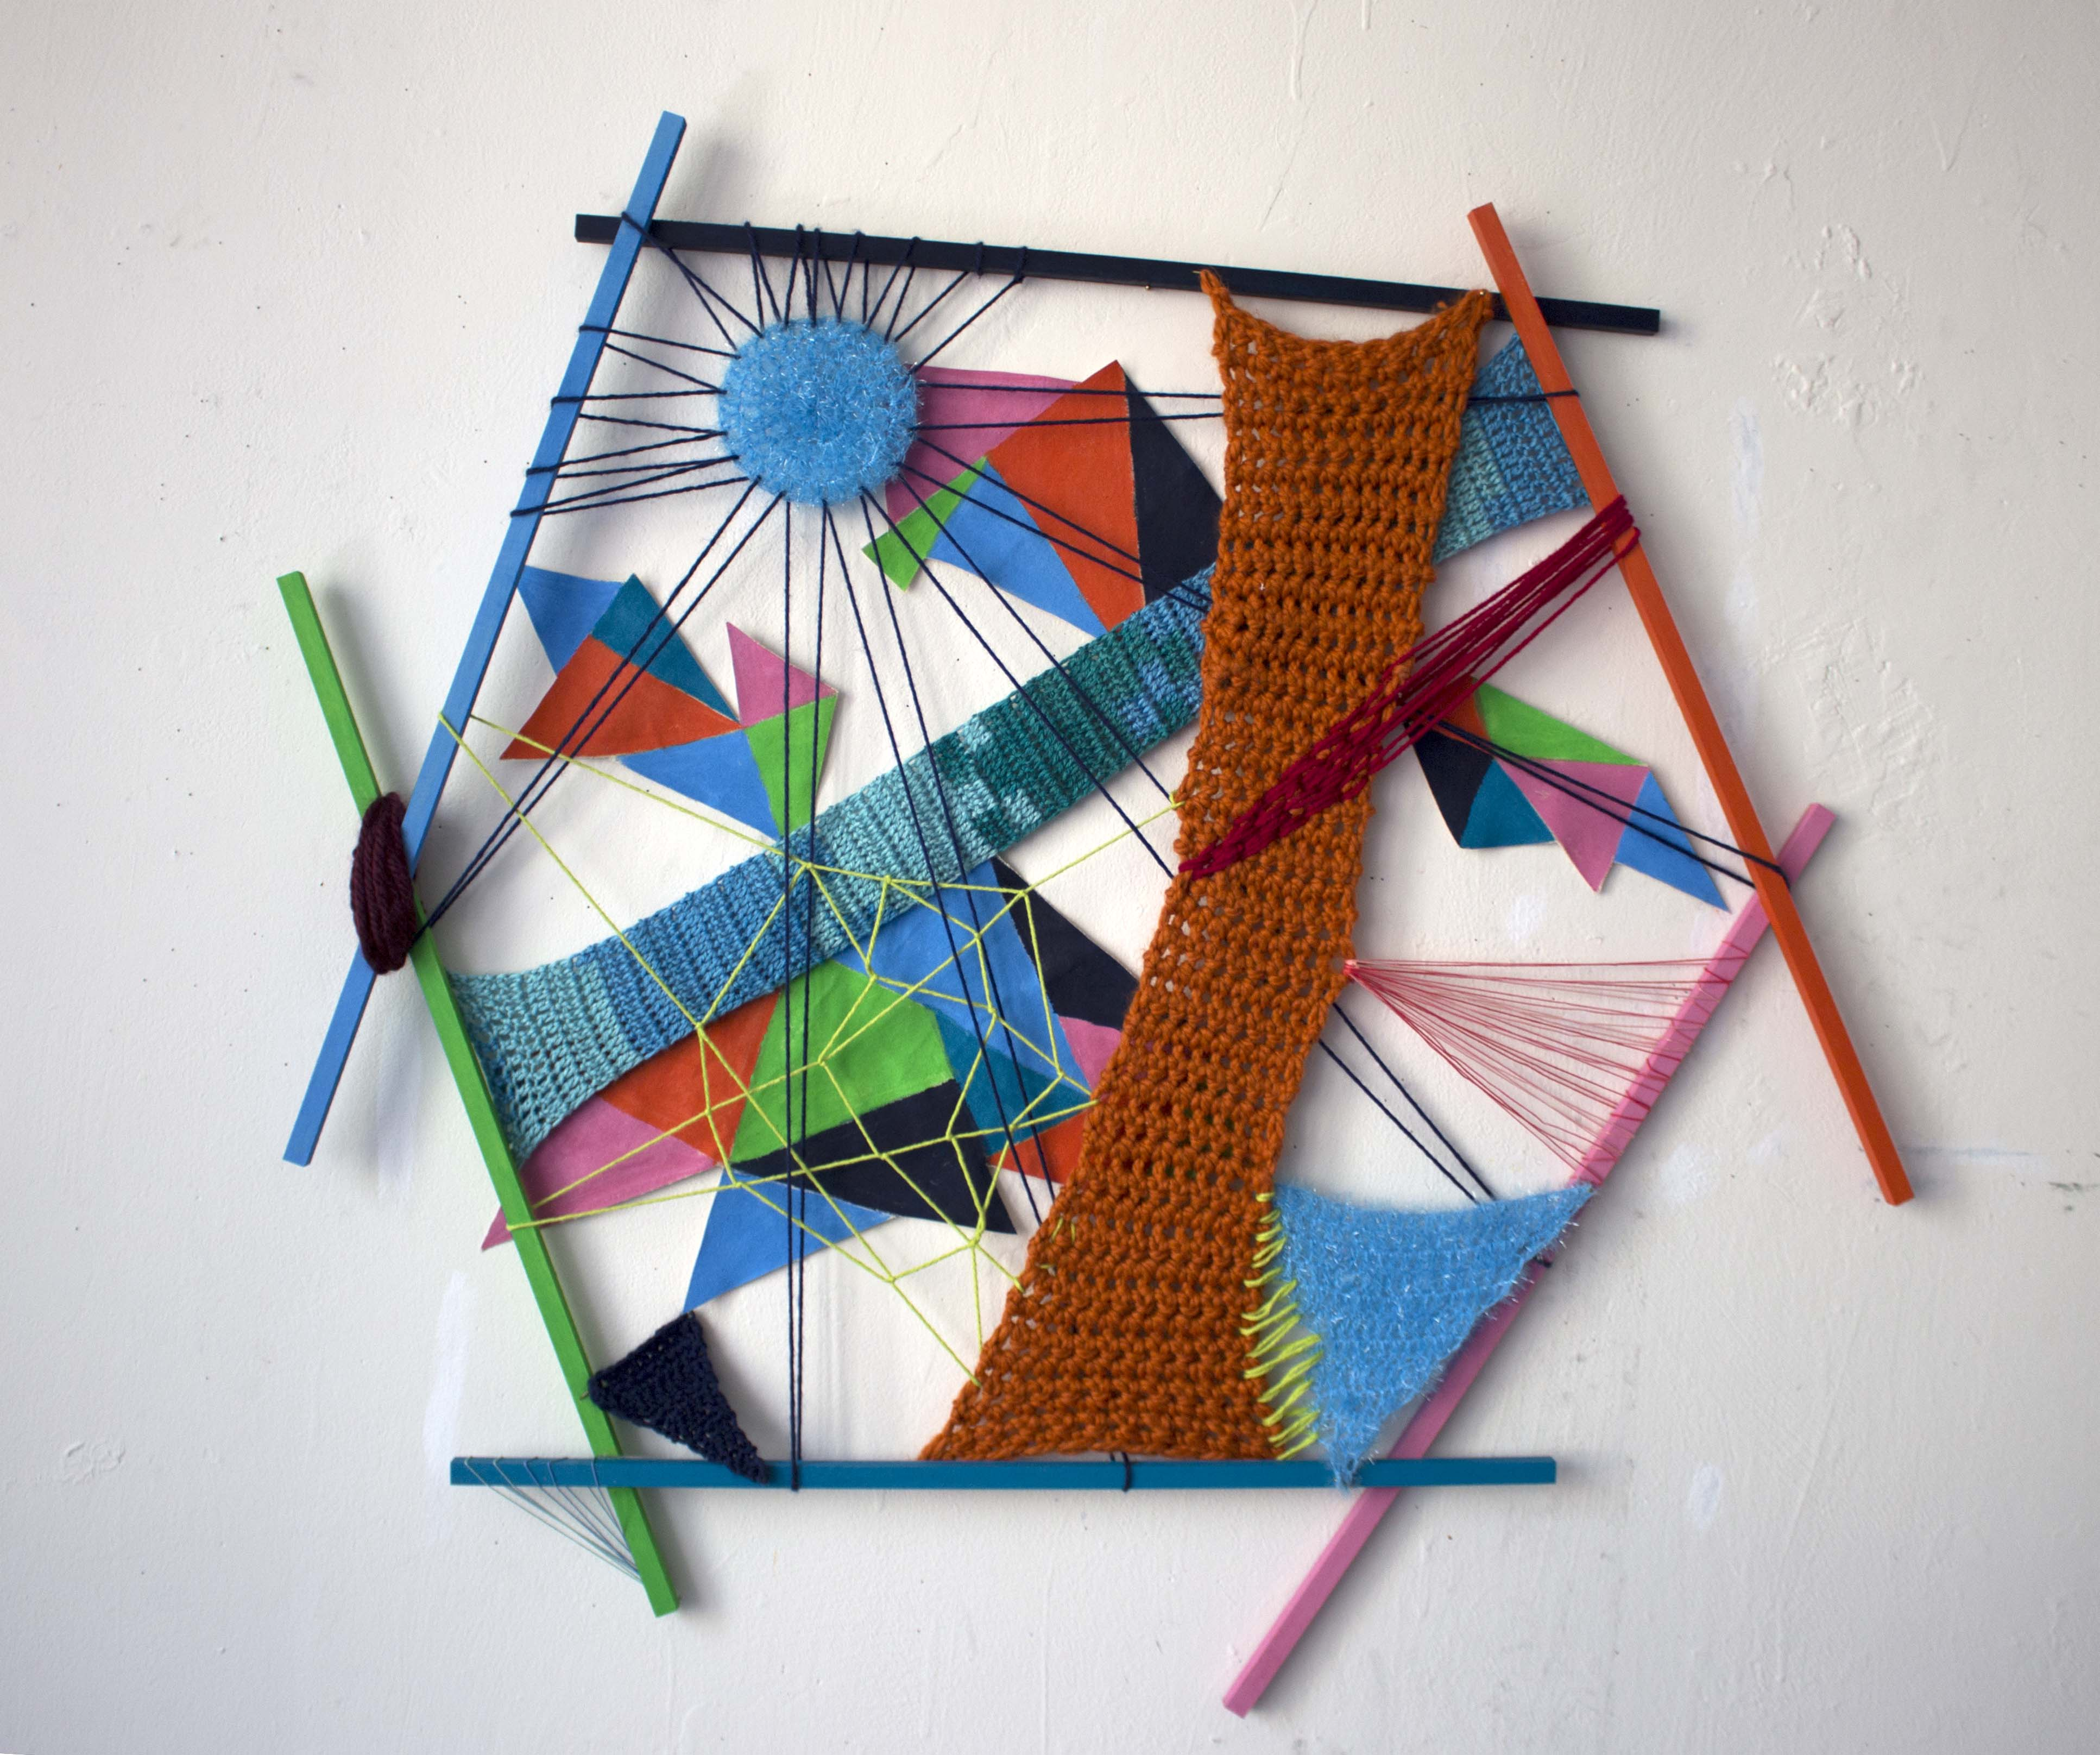 Painting made with yarn